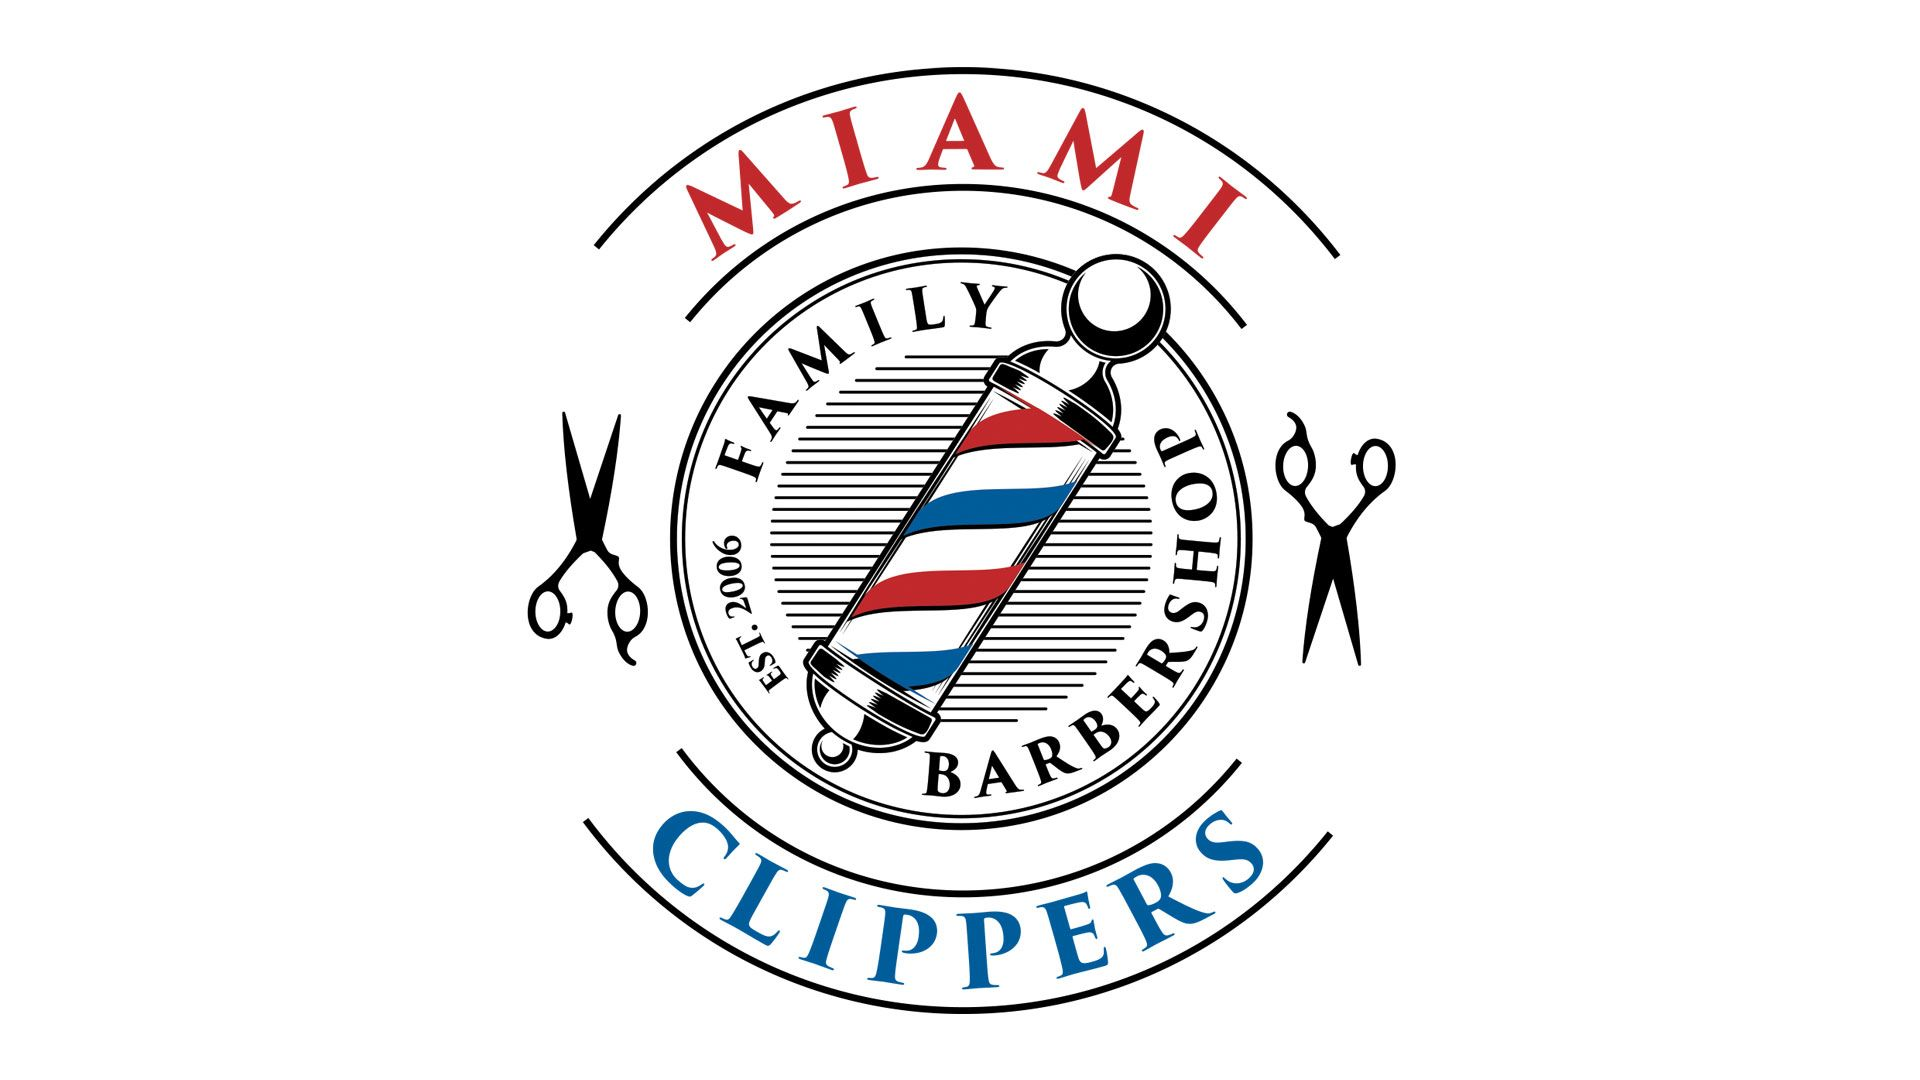 Miami Clippers Family Barbershop